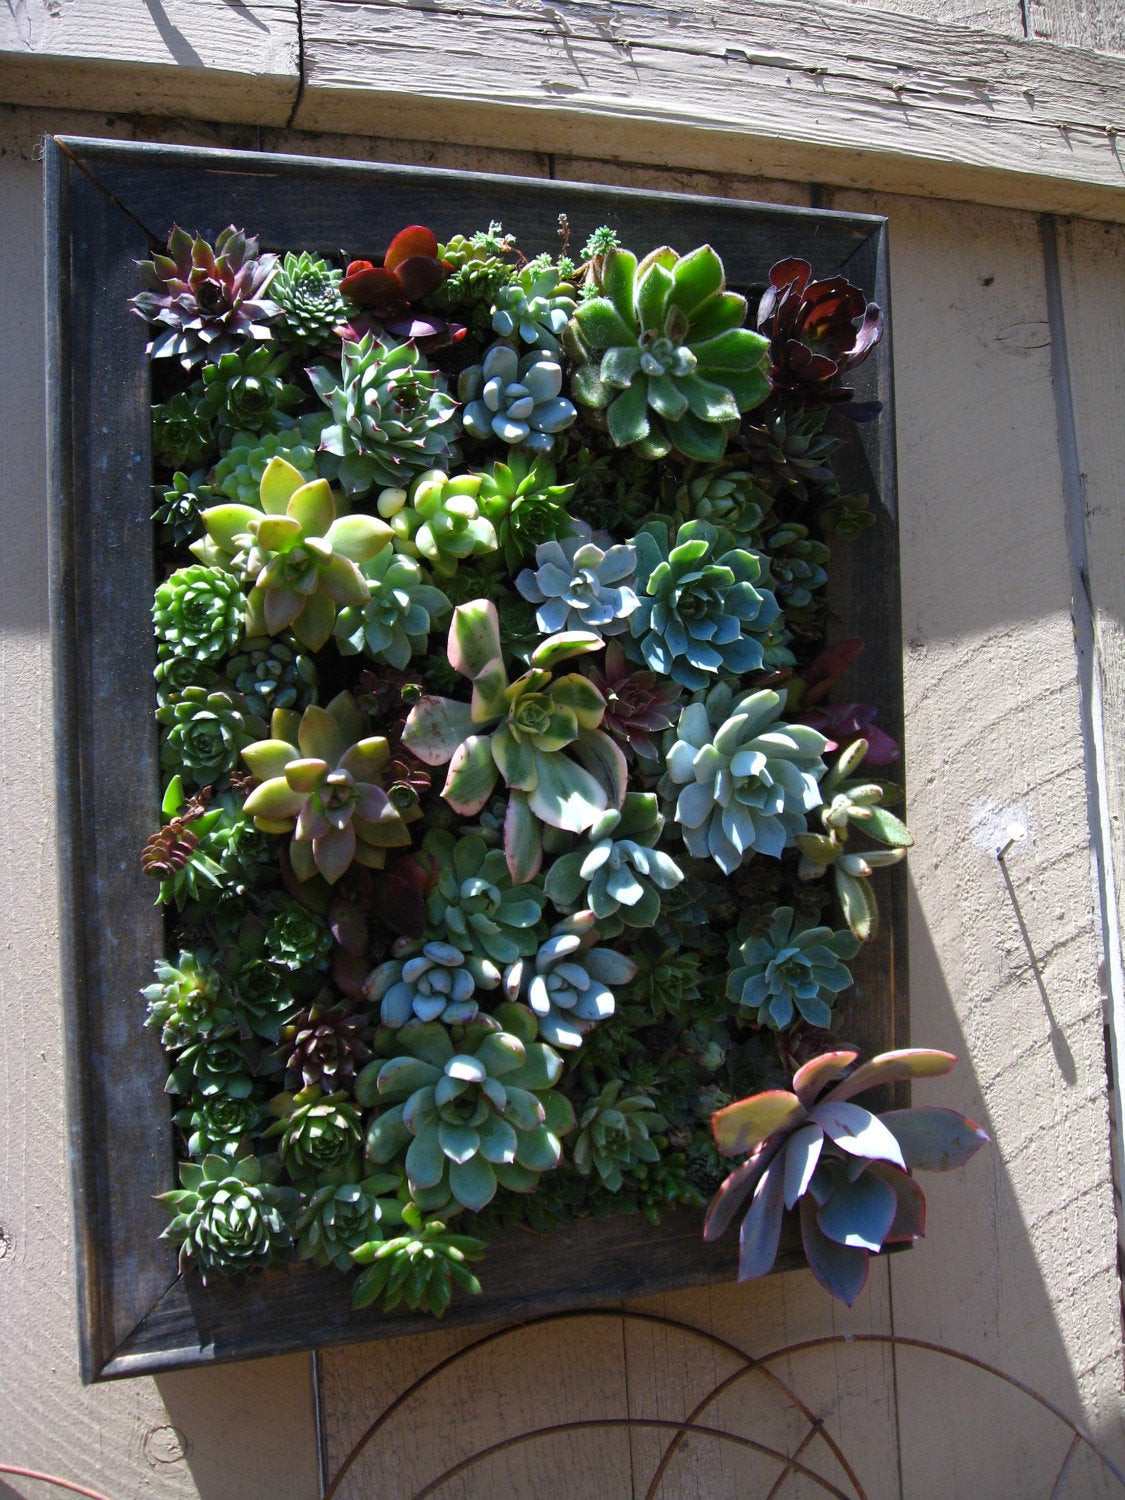 Best ideas about Hanging Succulent Planter . Save or Pin Rustic Hanging Vertical Planter with Succulent Arrangement Now.